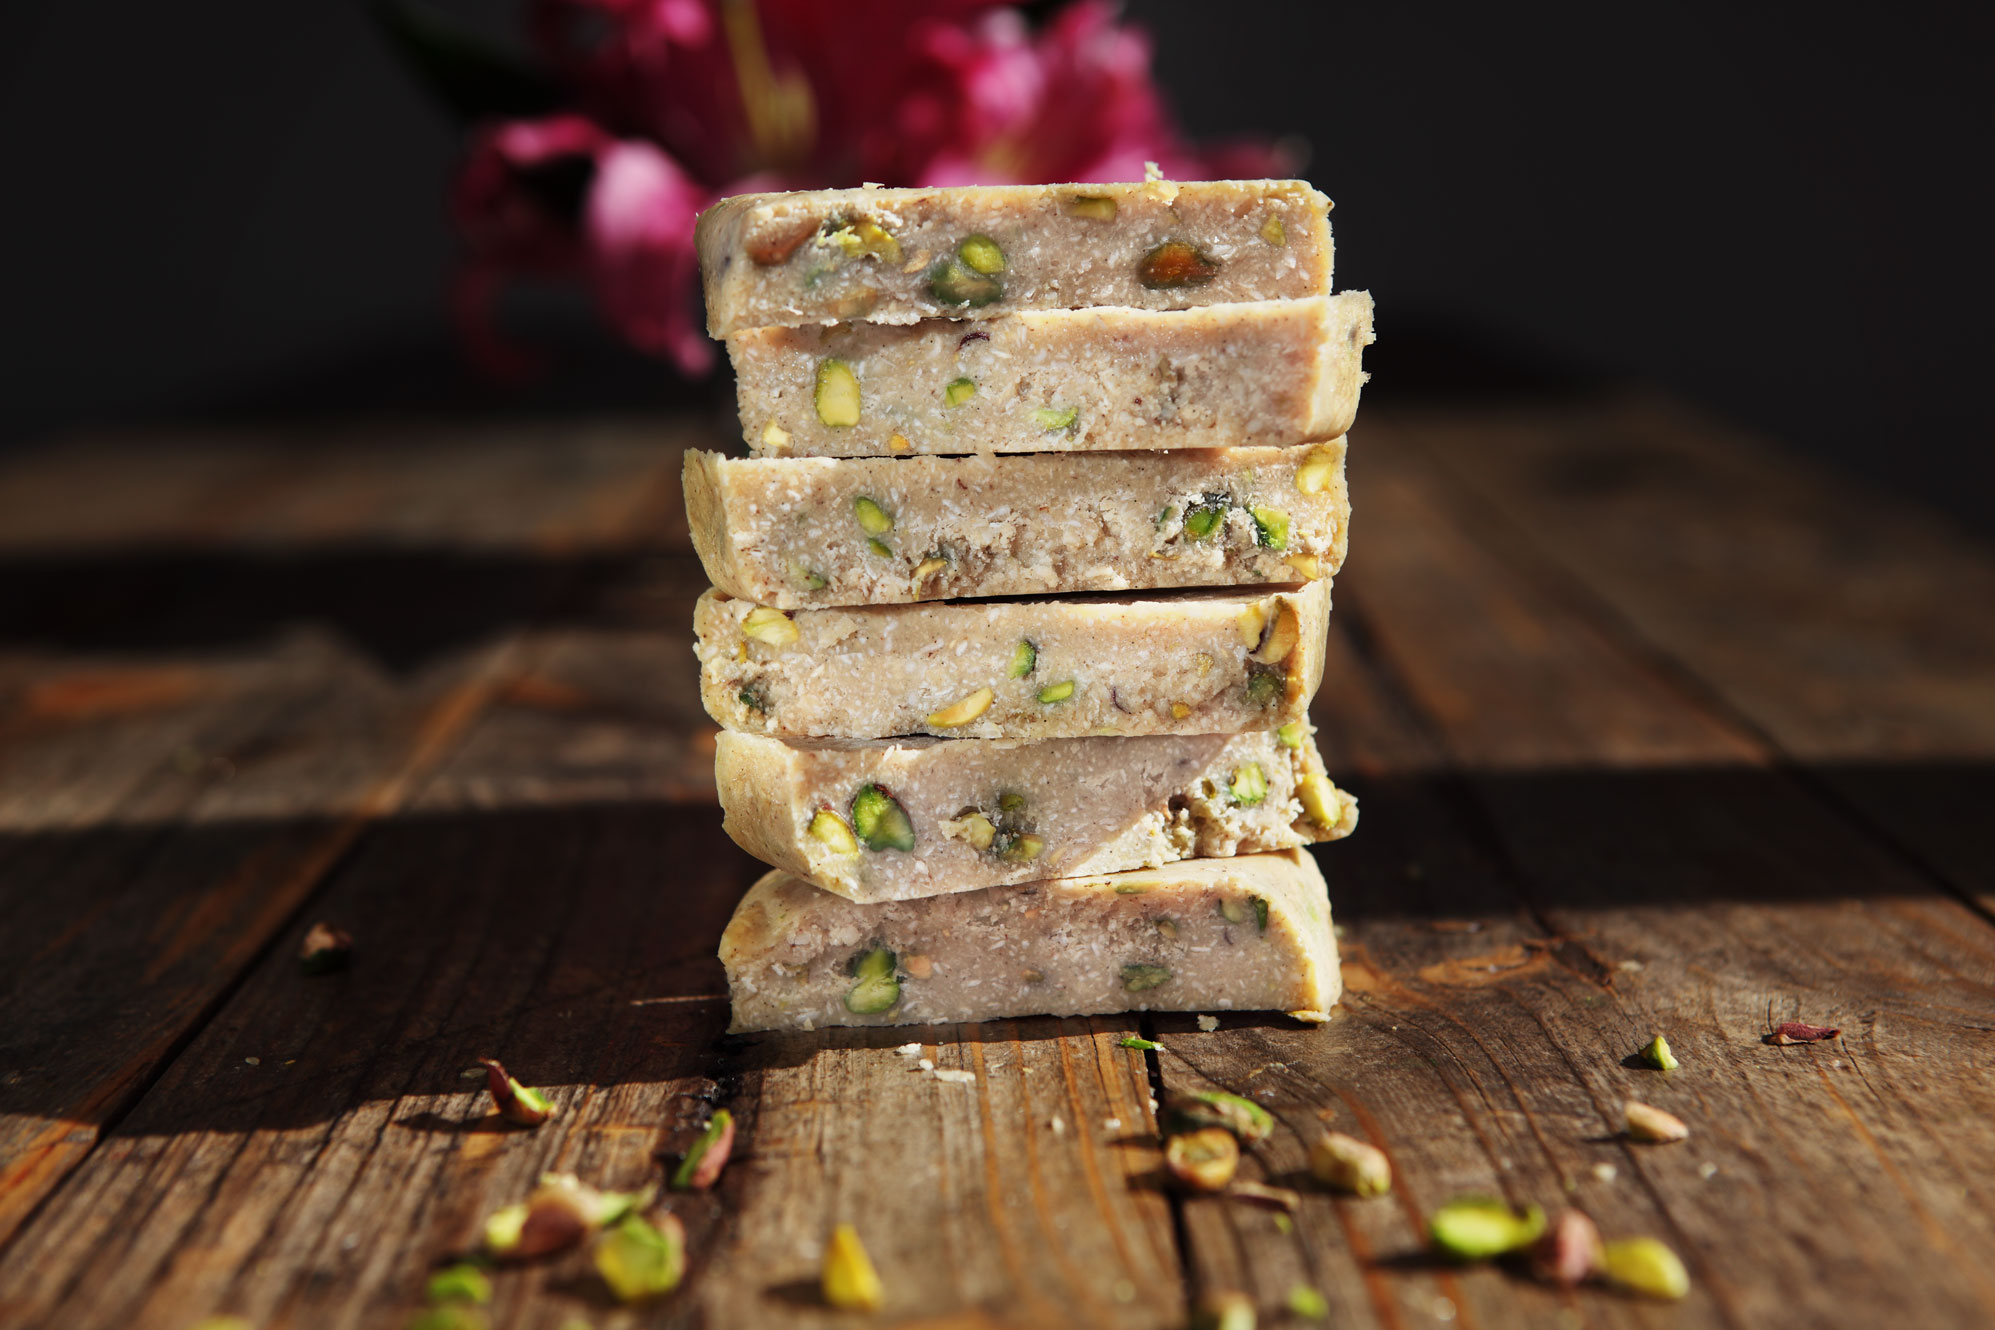 chia-spiced-white-chocolate-bars-with-pisachios-01